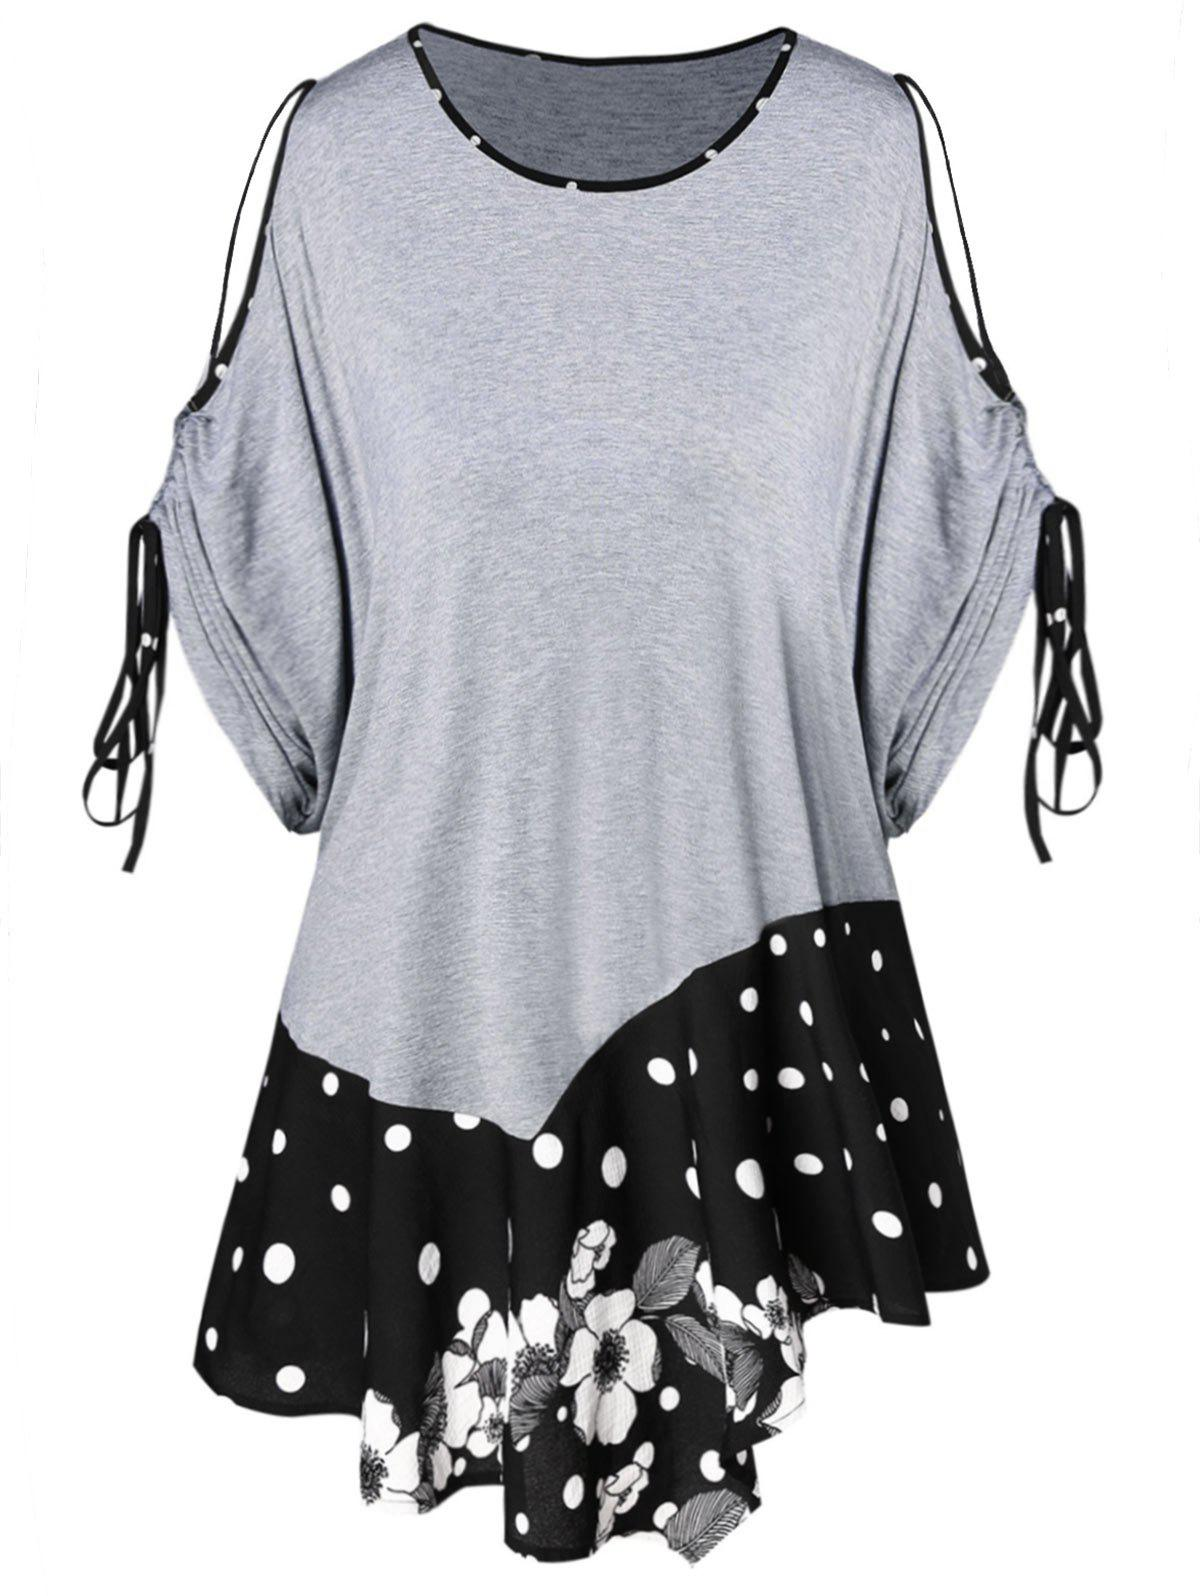 Latest Plus Size Cut Out Drawstring Sleeve Polka Dot T-shirt d618376bcd26